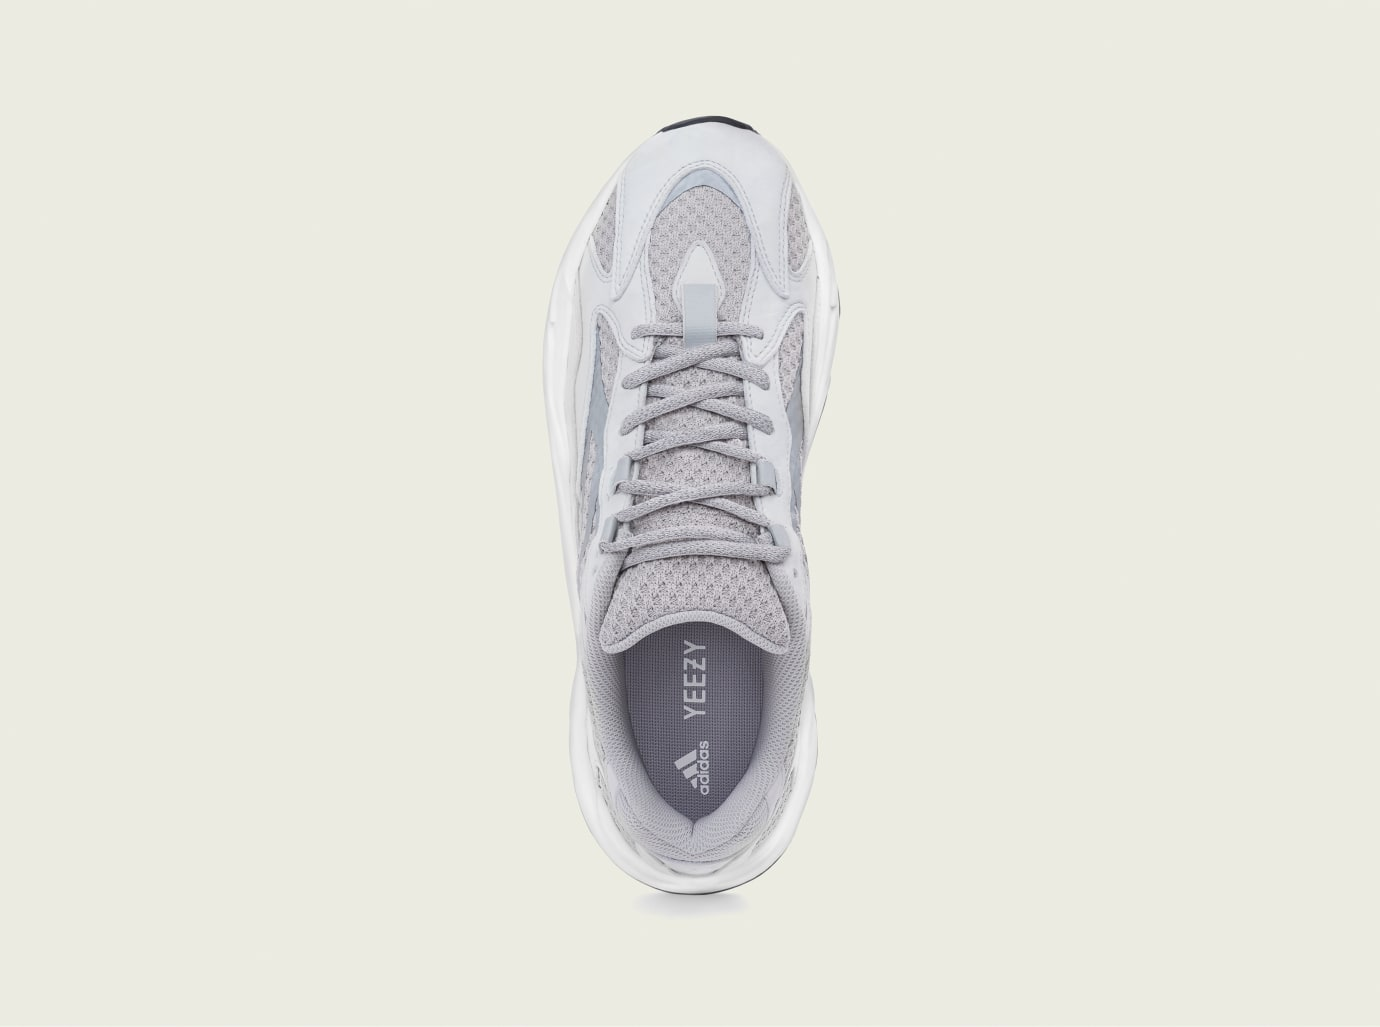 buy popular 75020 e316c Adidas Yeezy Boost 700 V2 'Static' Release Date Dec. 2018 ...